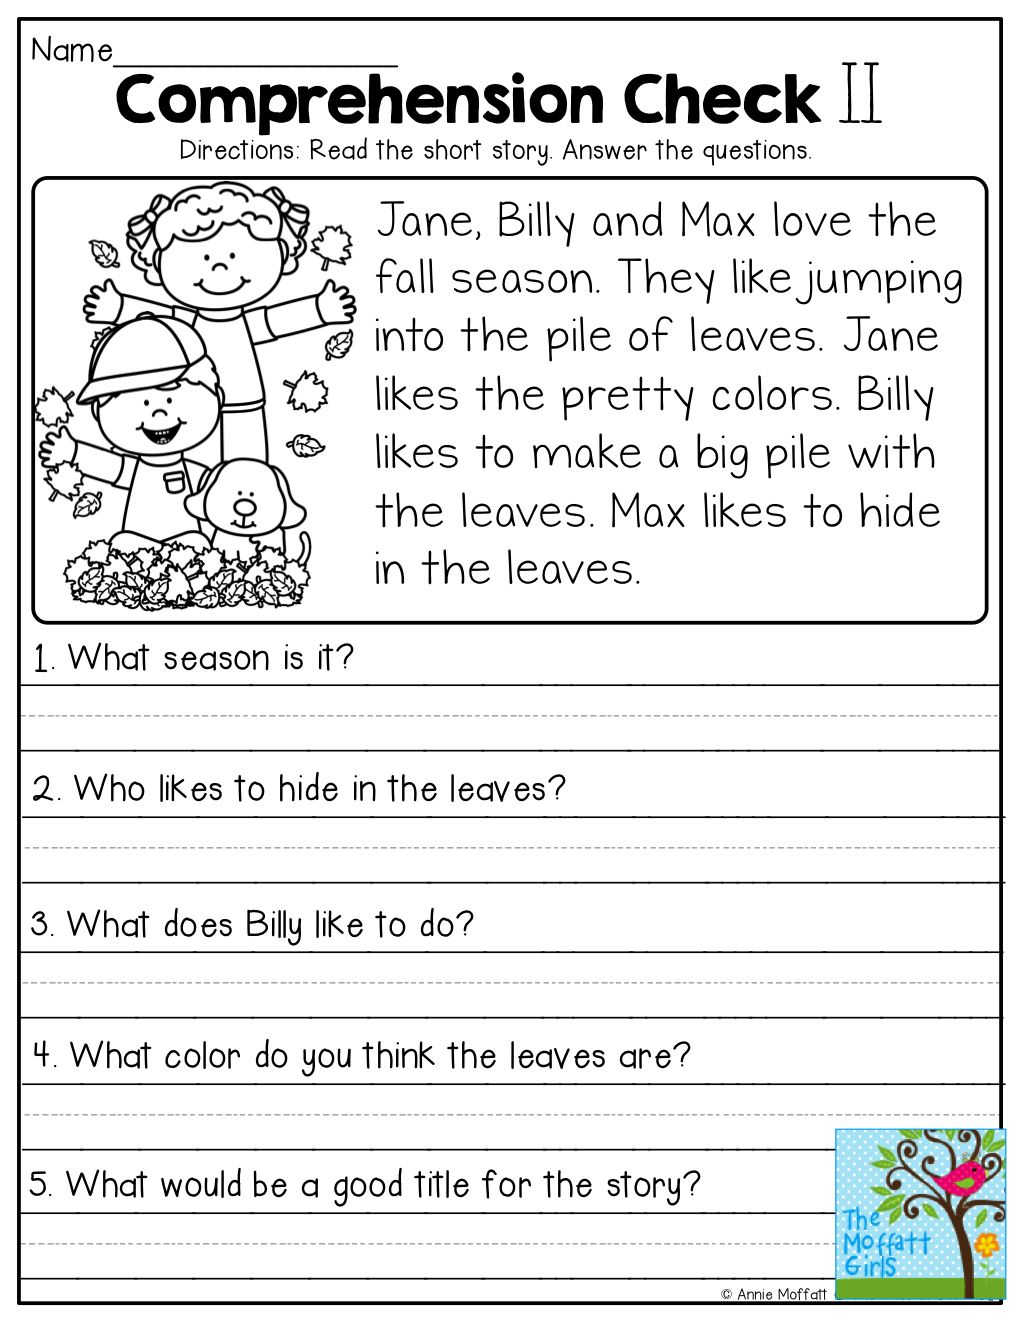 Image Result For October Reading Comprehension Worksheets 1st